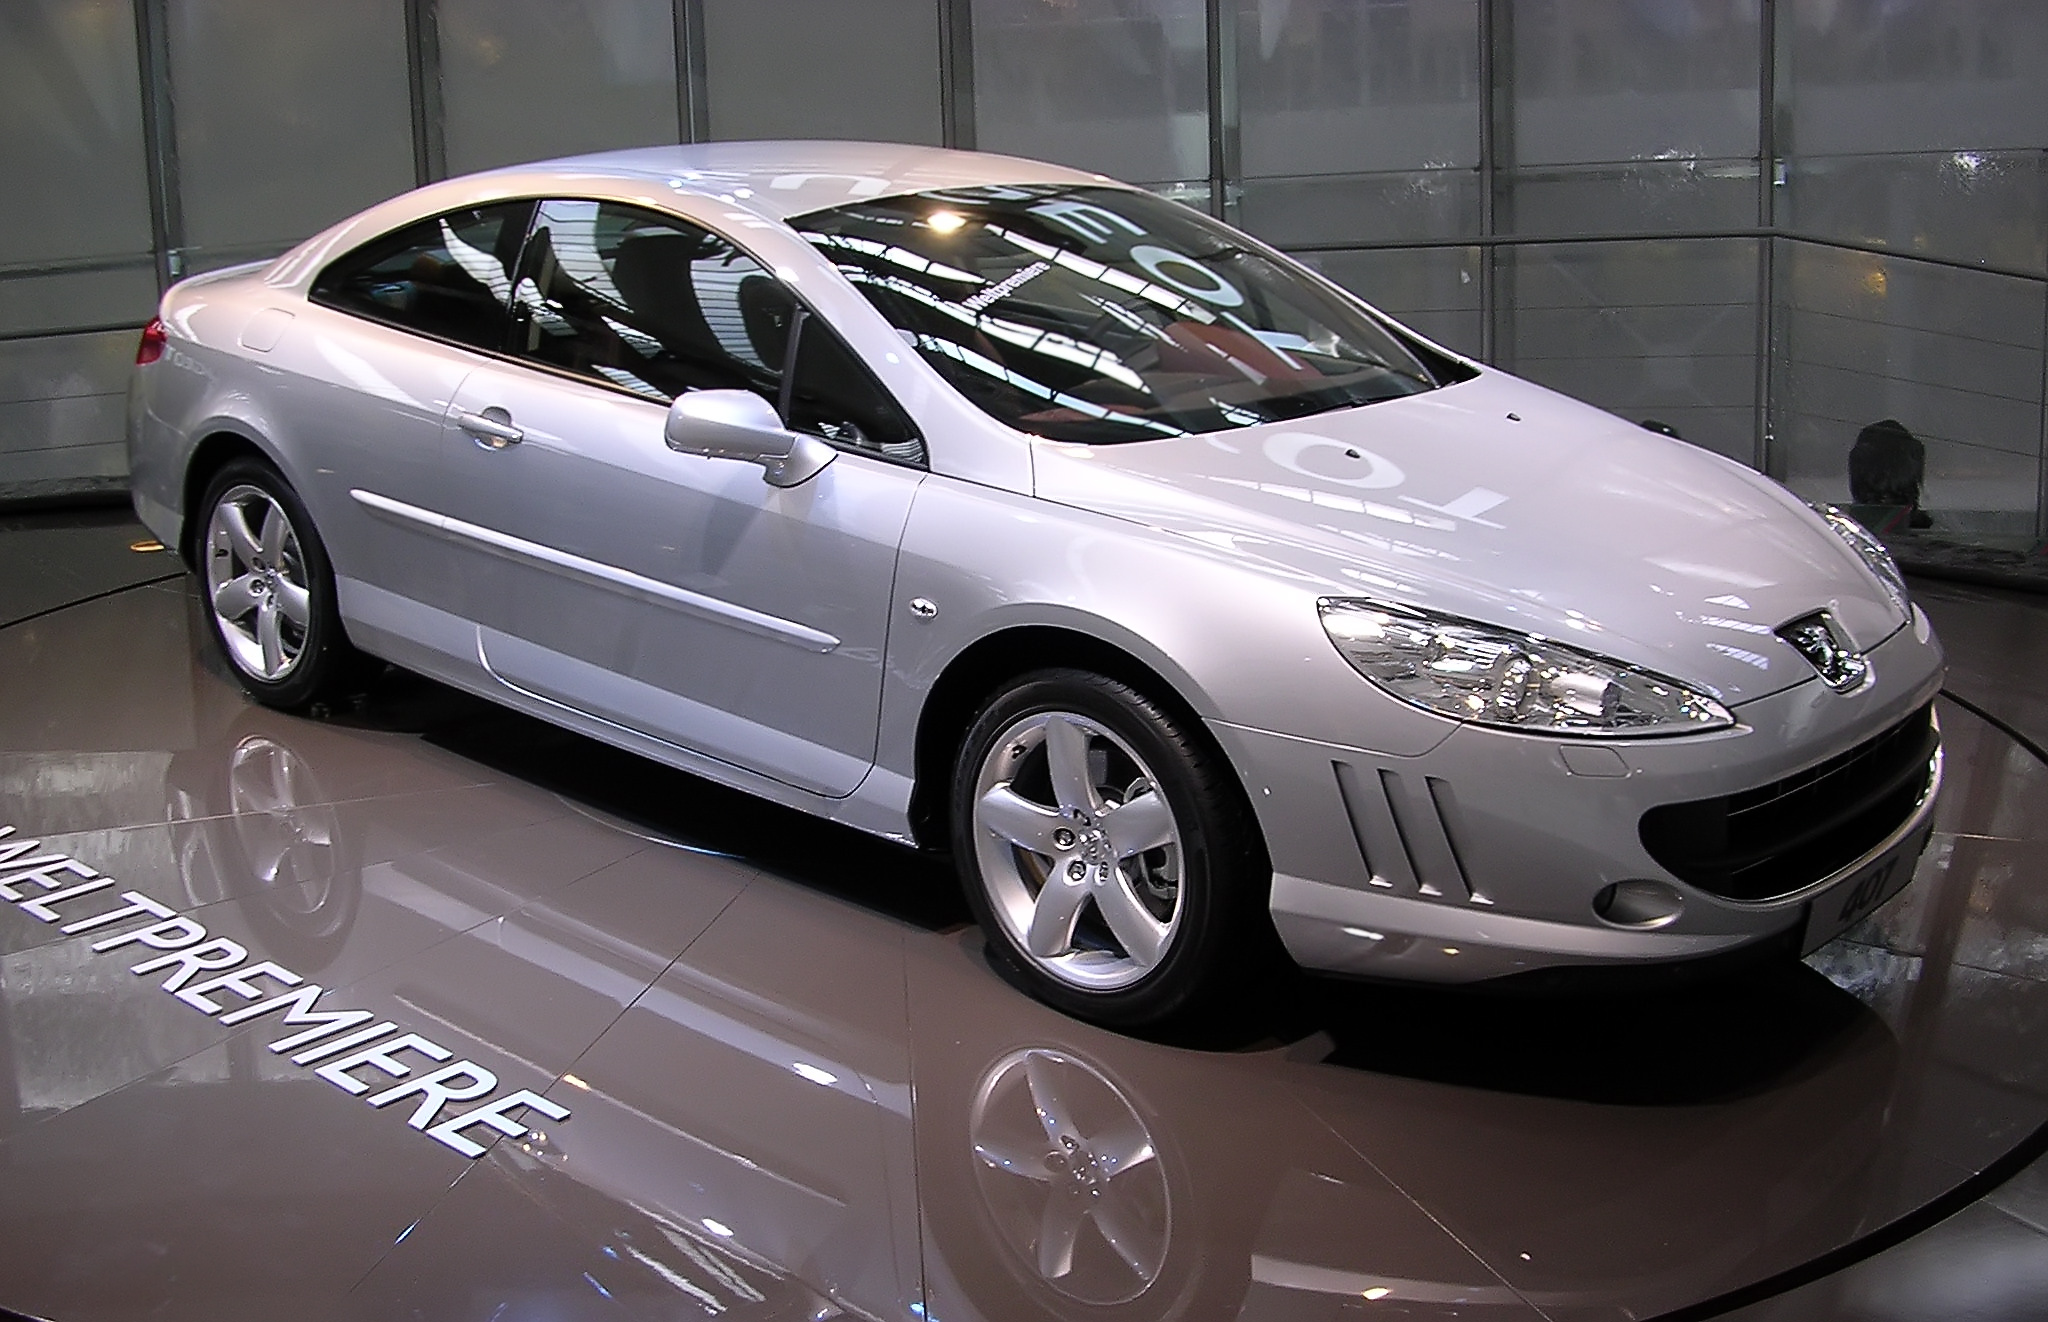 peugeot 407 coup iaa 2005 jpg. Black Bedroom Furniture Sets. Home Design Ideas